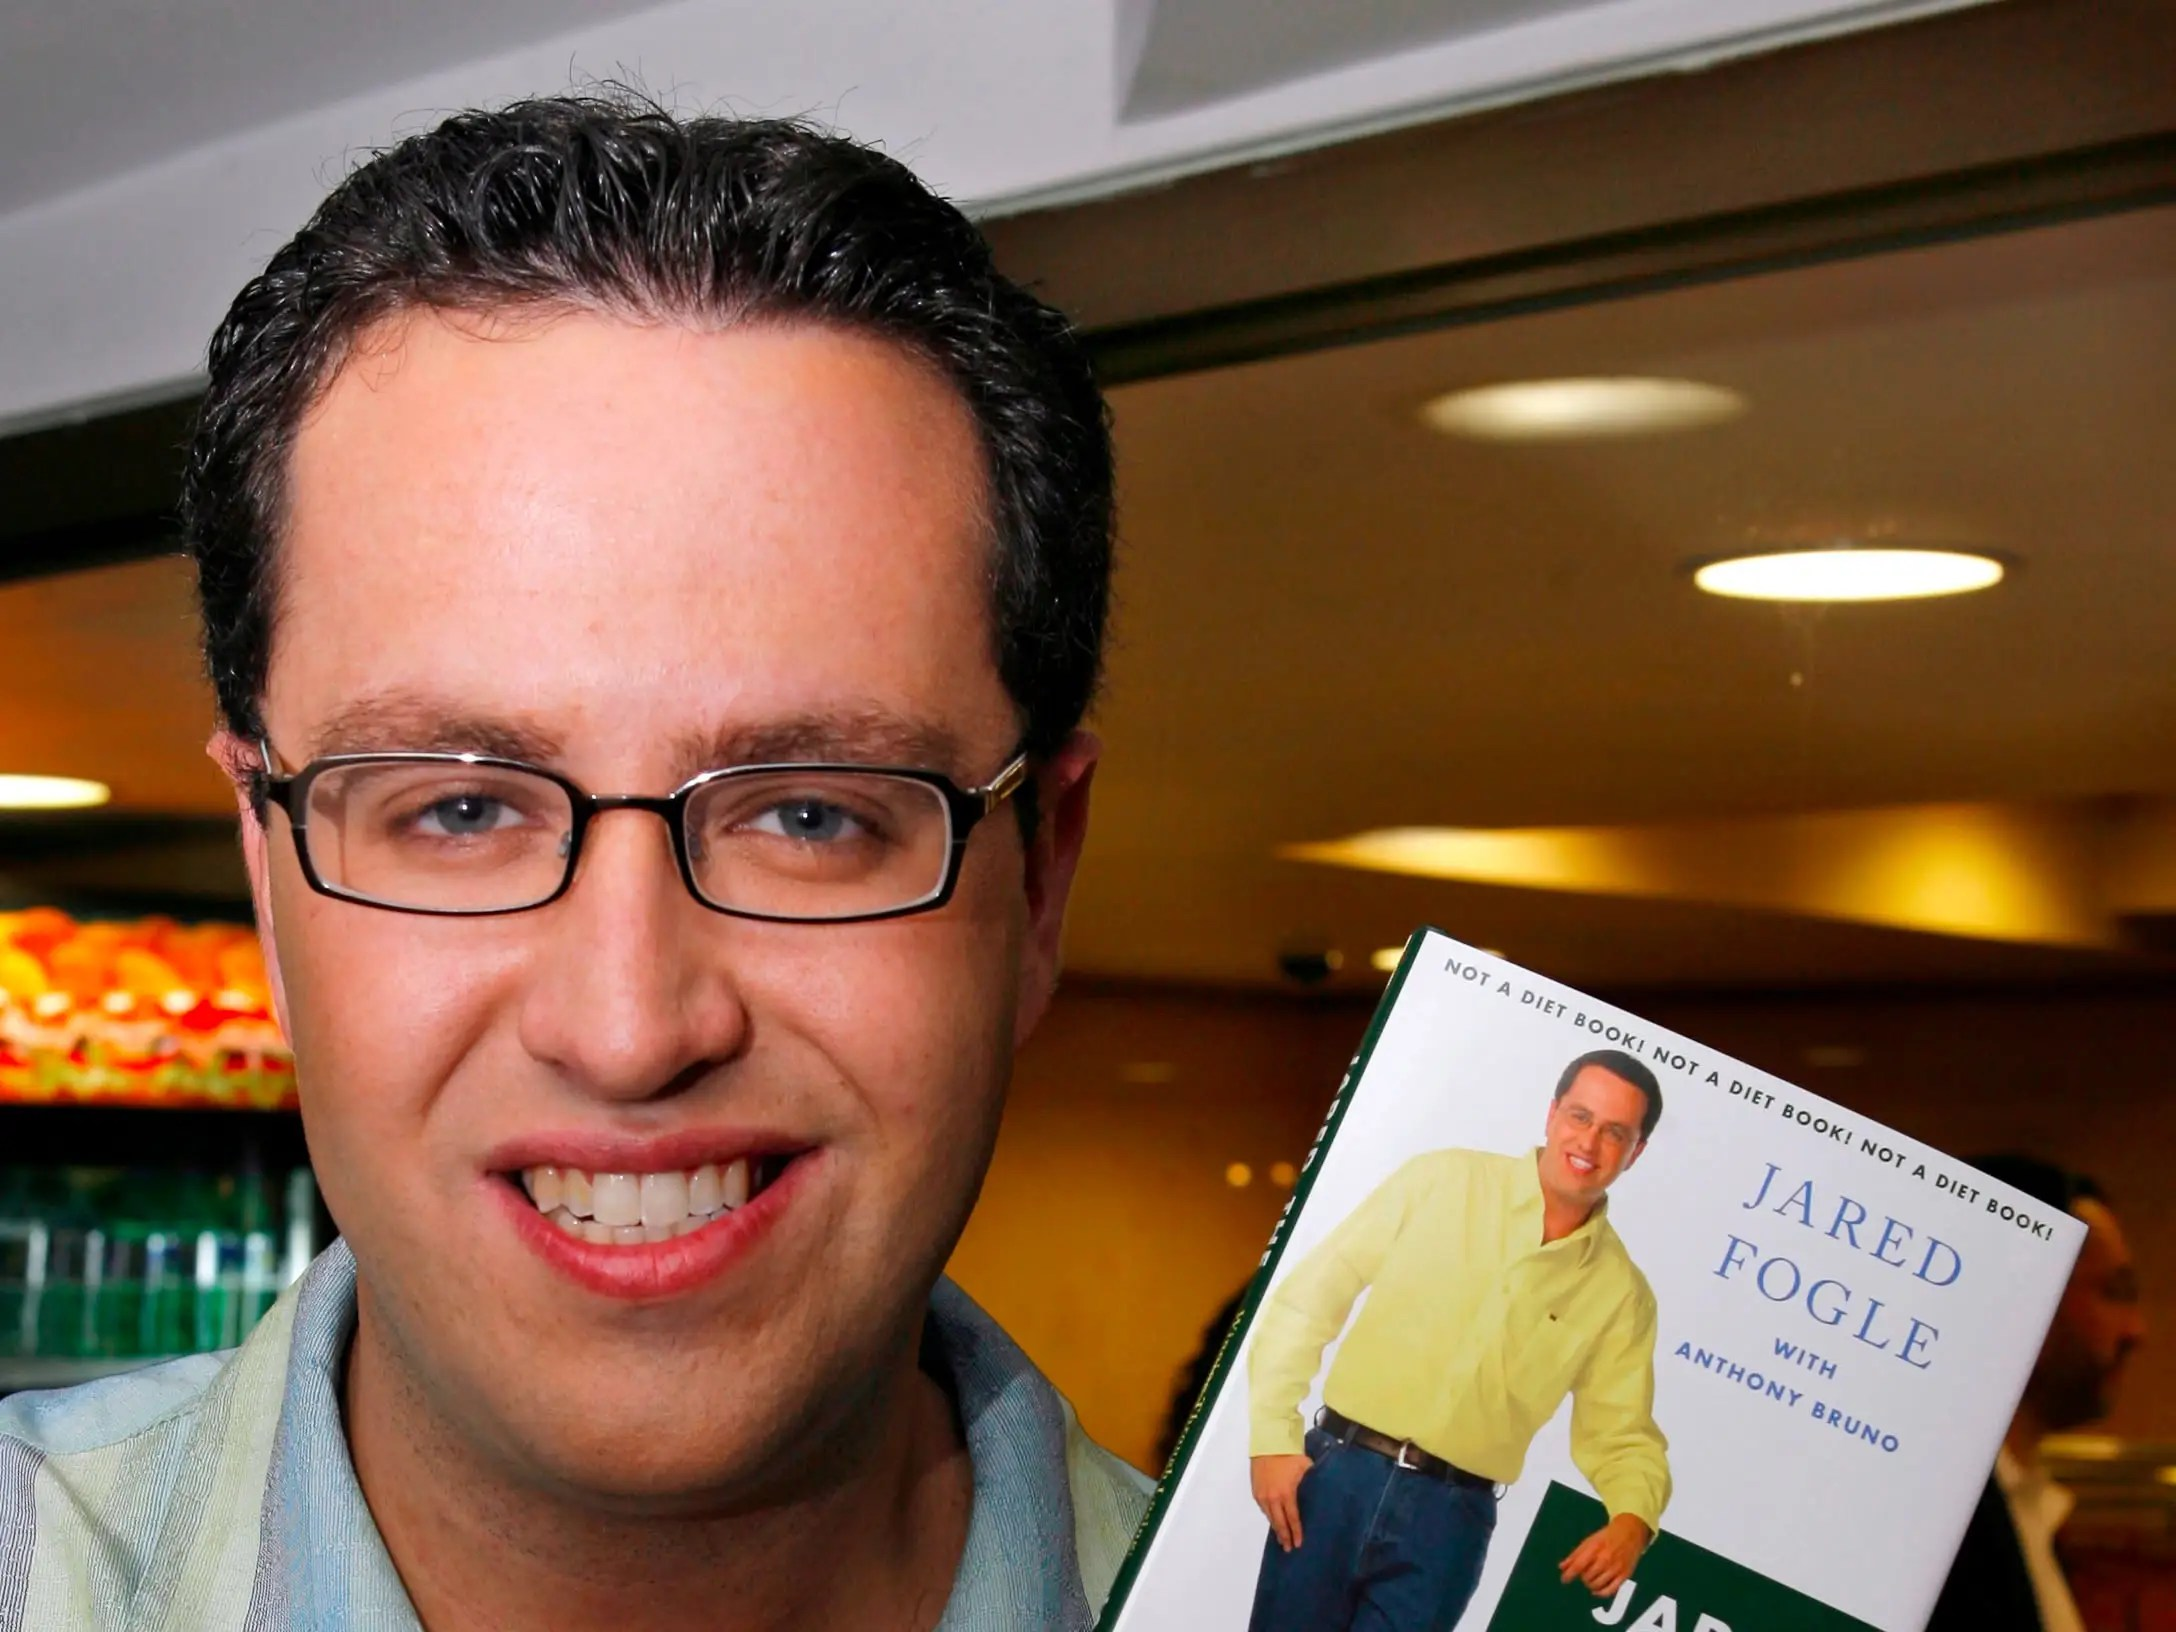 SUBWAY FRANCHISEE: I told Subway about Jared Fogle's interest in kids and they did nothing   Business Insider